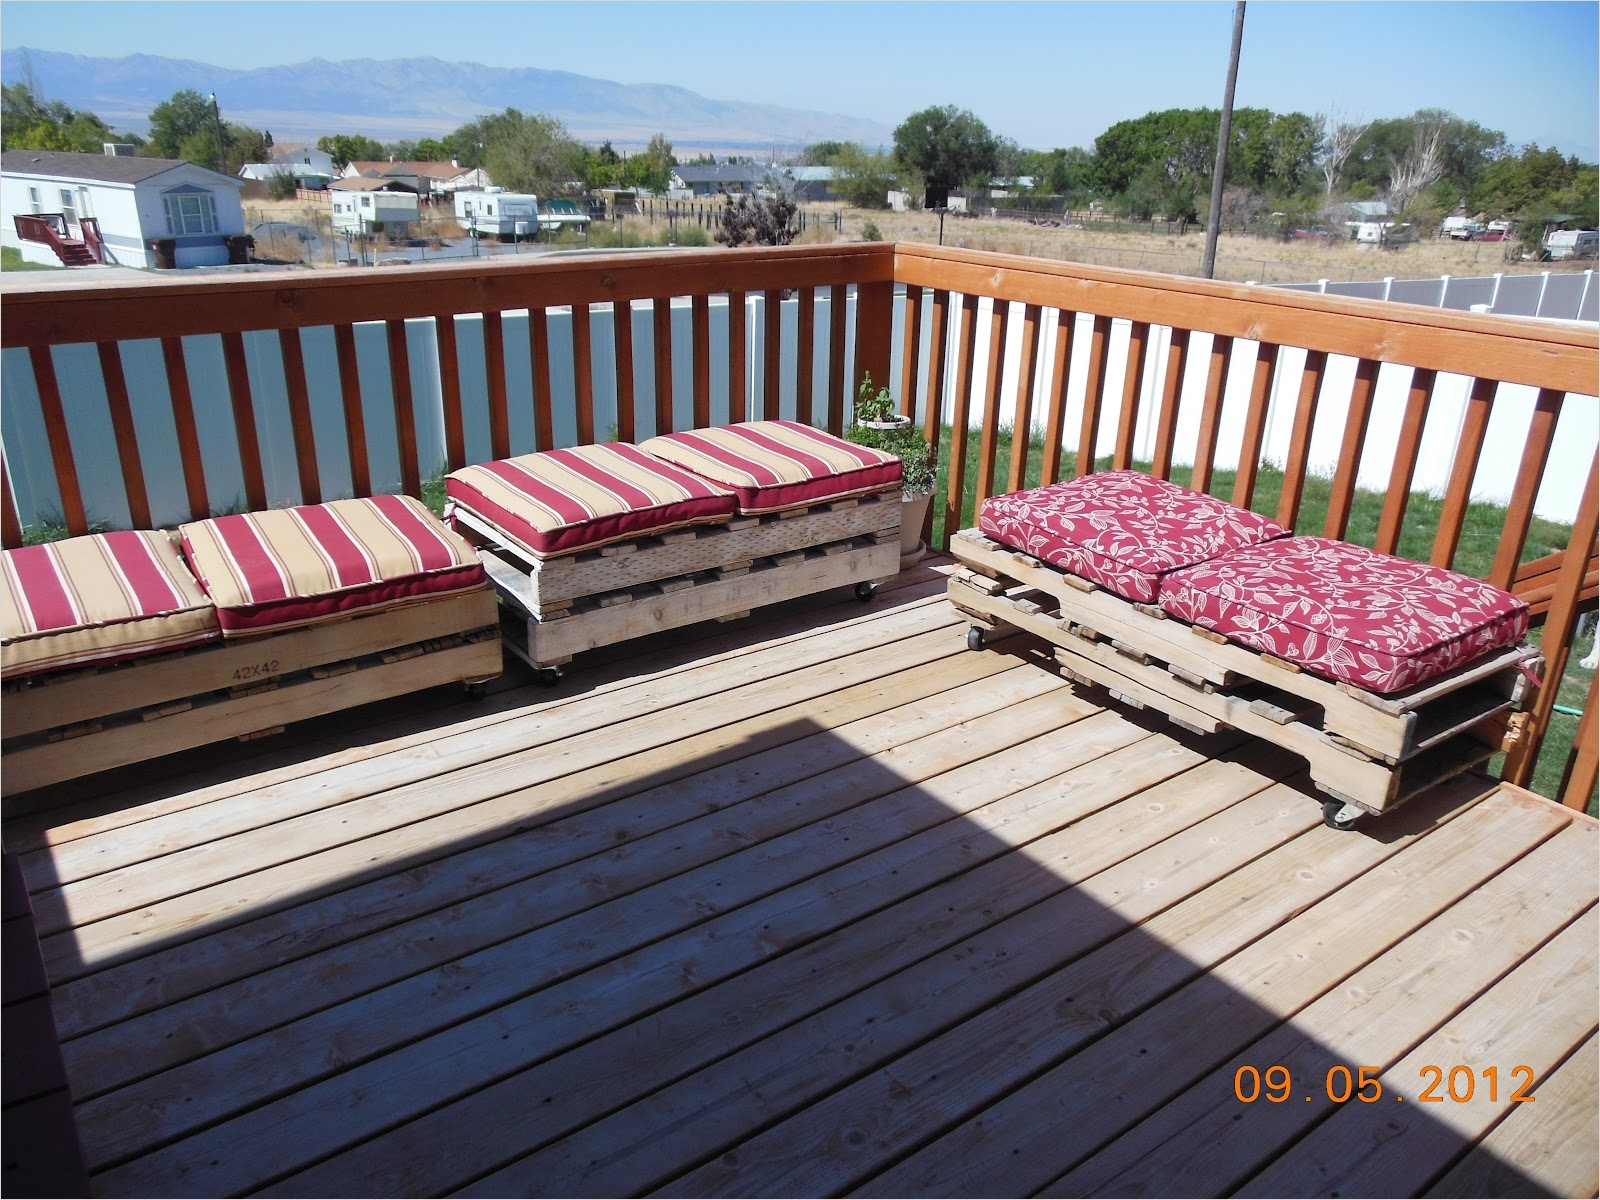 40 Diy Ideas Outdoor Furniture Made From Pallets 63 Outdoor Furniture Made Out Pallets Home Decorating Ideas 4